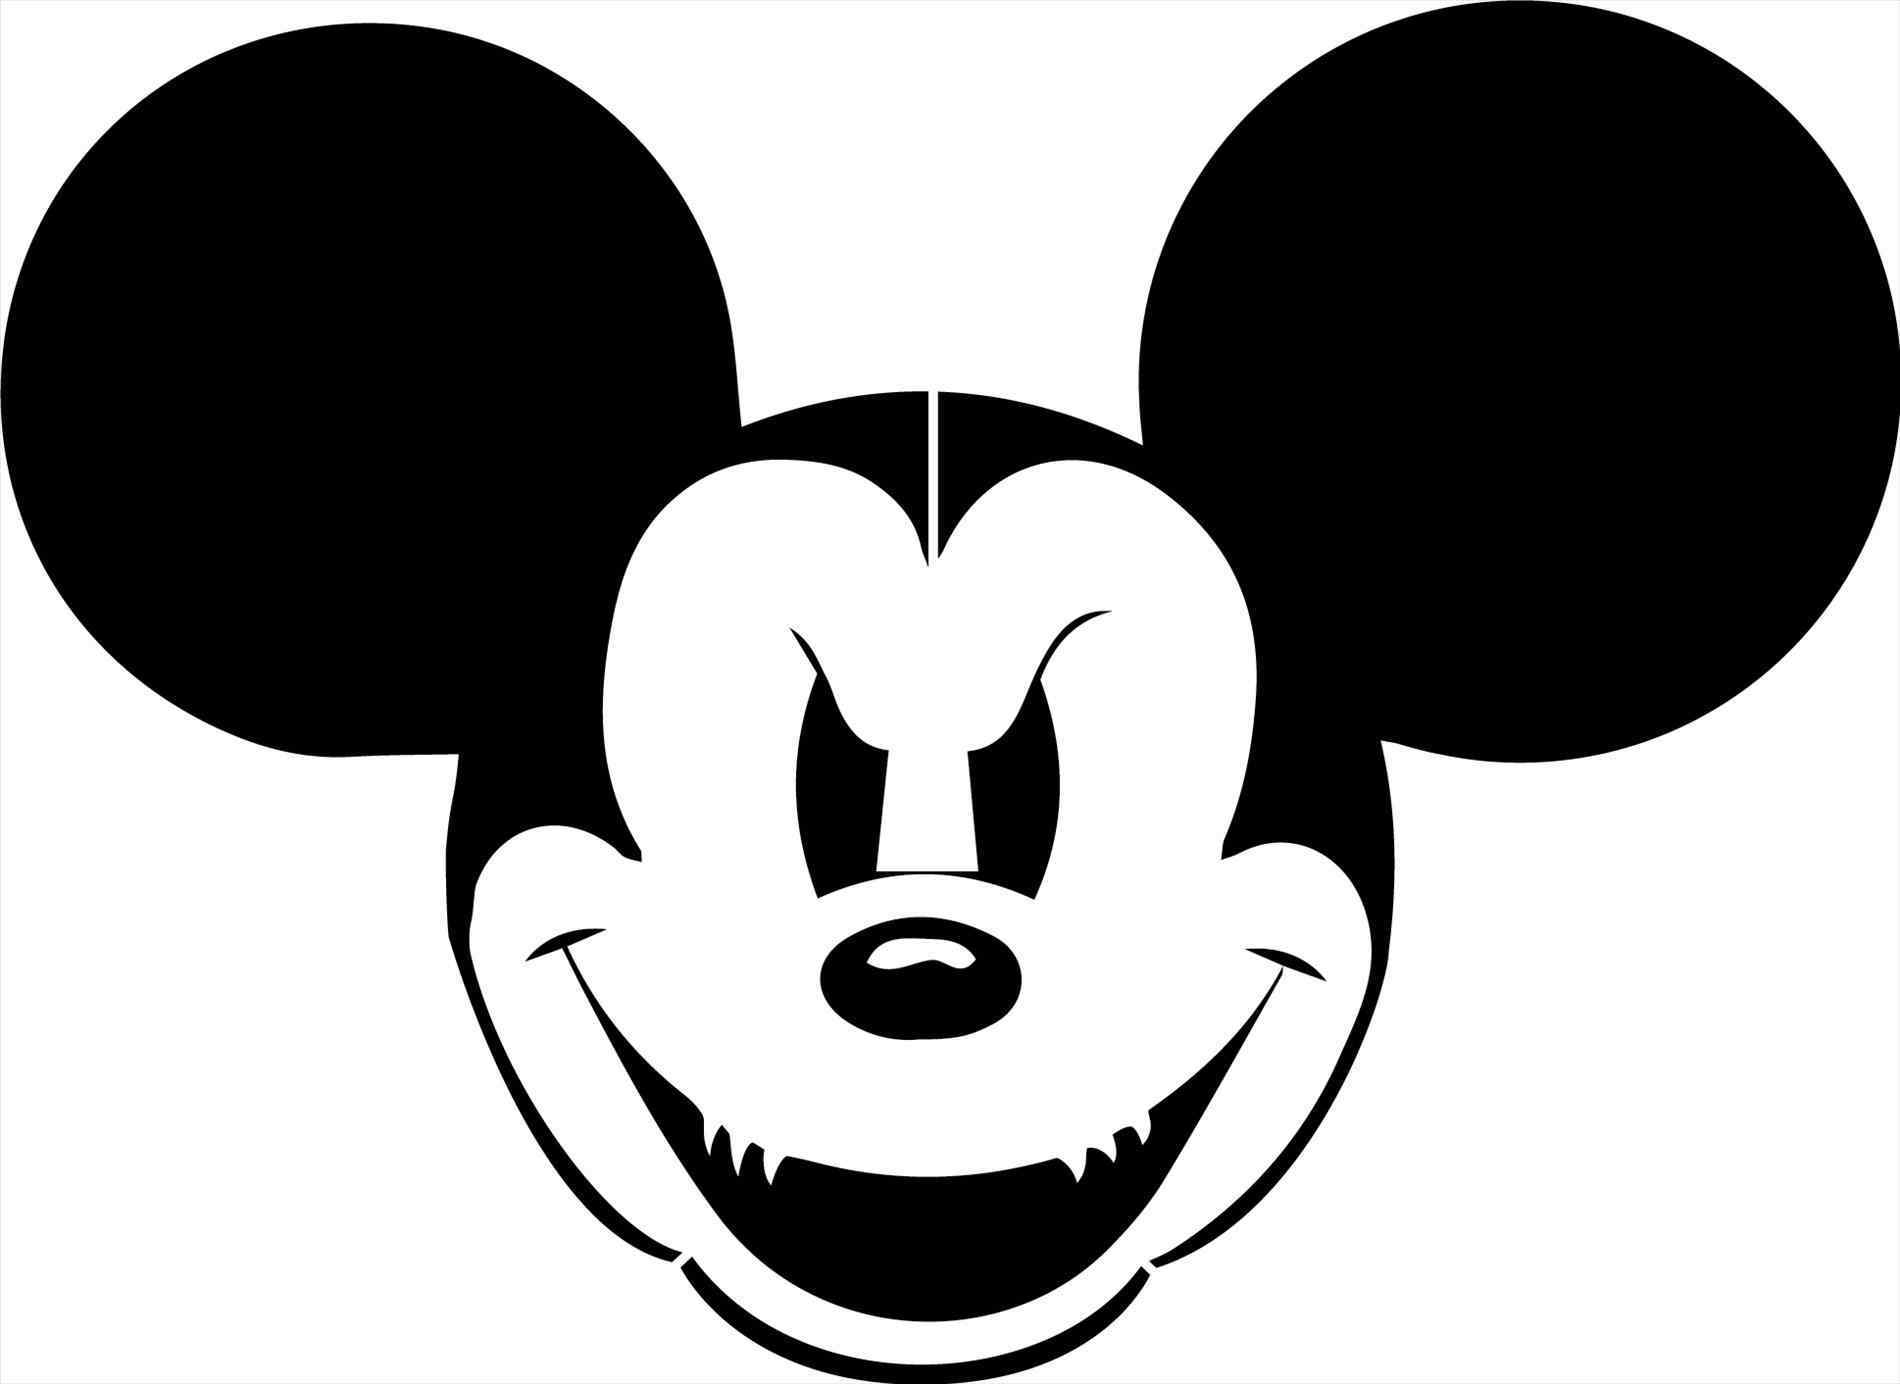 1900x1384 Walt Disney And Mickey Mouse Holding Hands Silhouette 2018